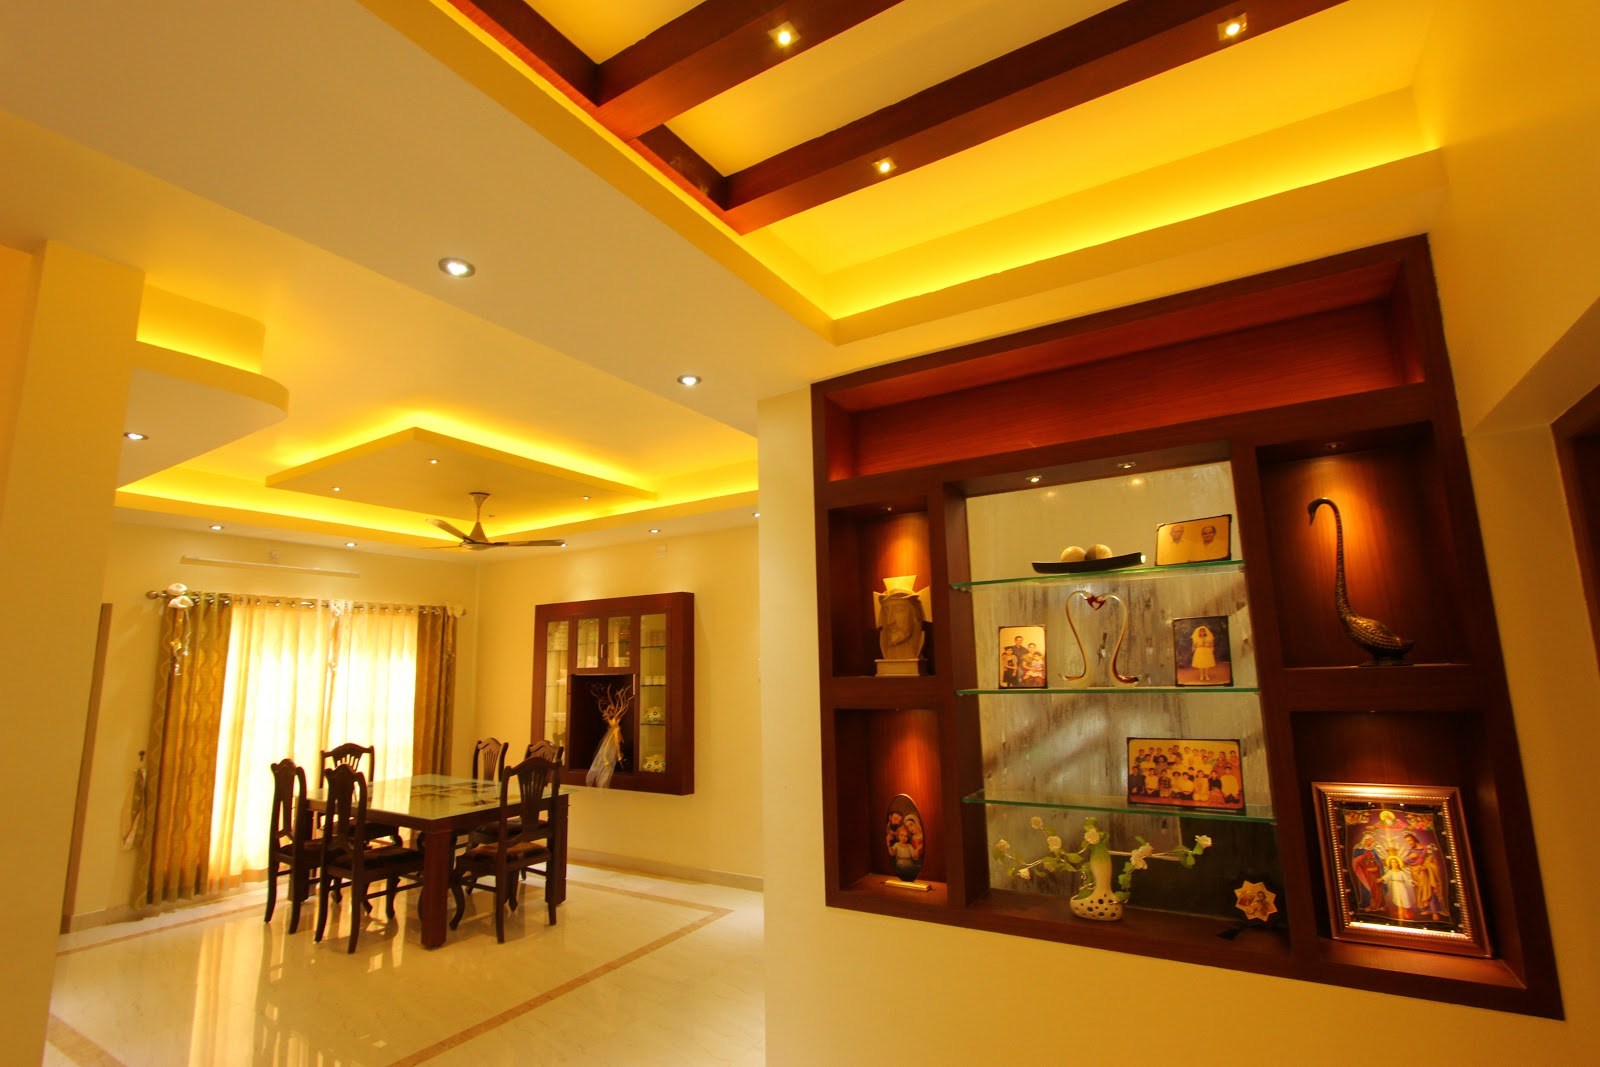 Shilpakala interiors award winning home interior design for House interior design hall